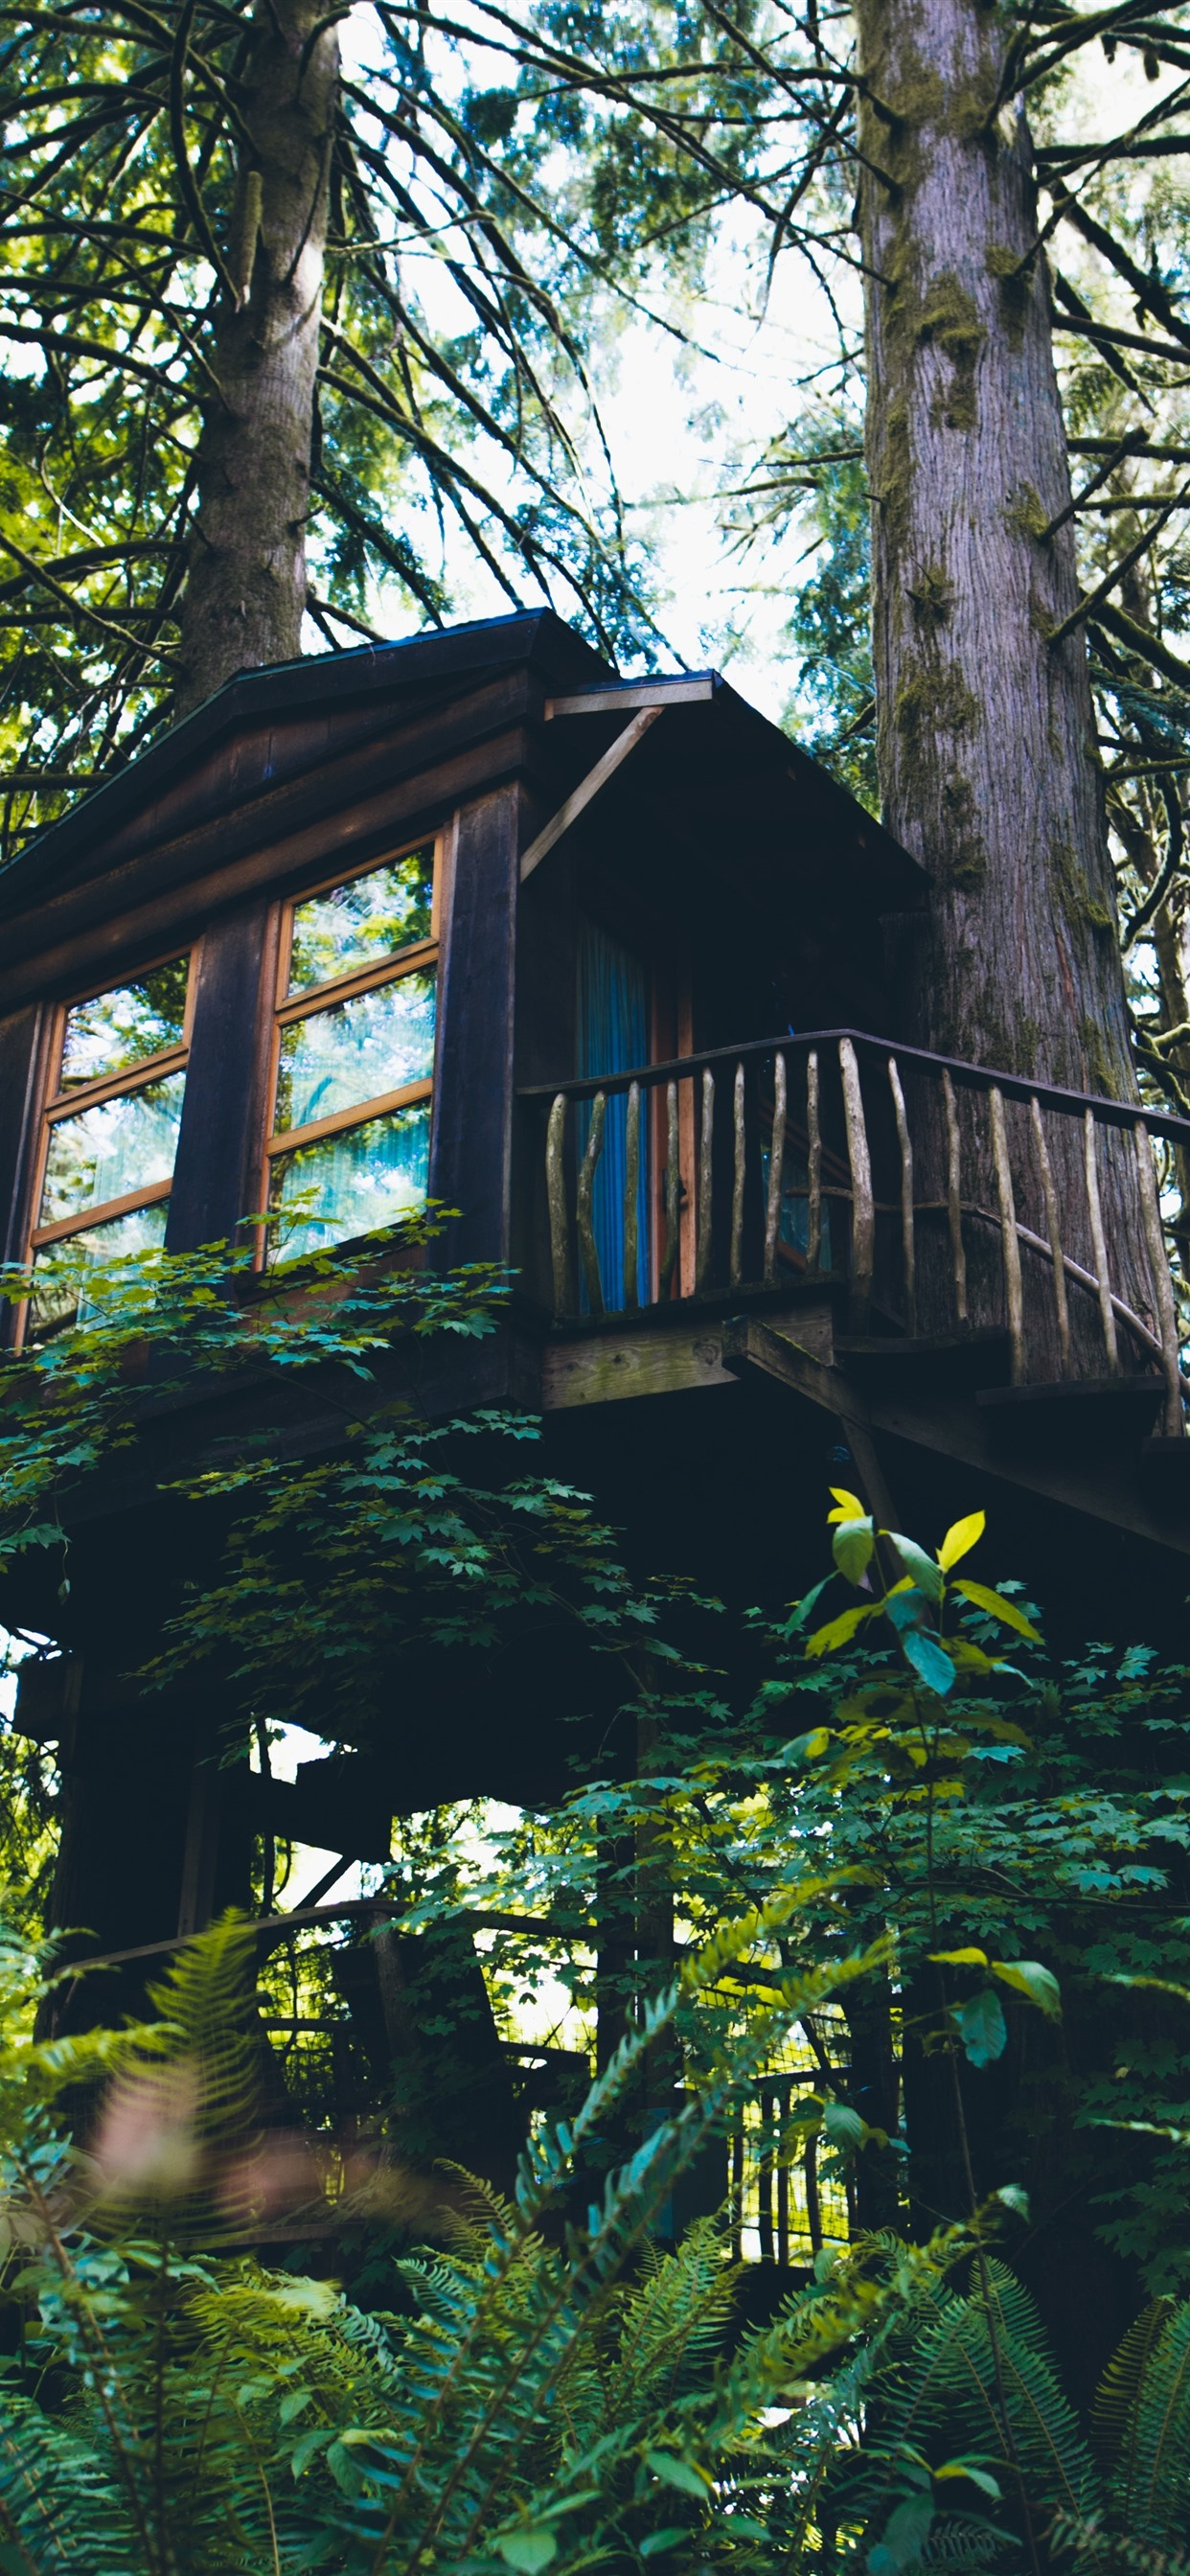 Tree House Forest Green 1242x2688 Iphone 11 Pro Xs Max Wallpaper Background Picture Image